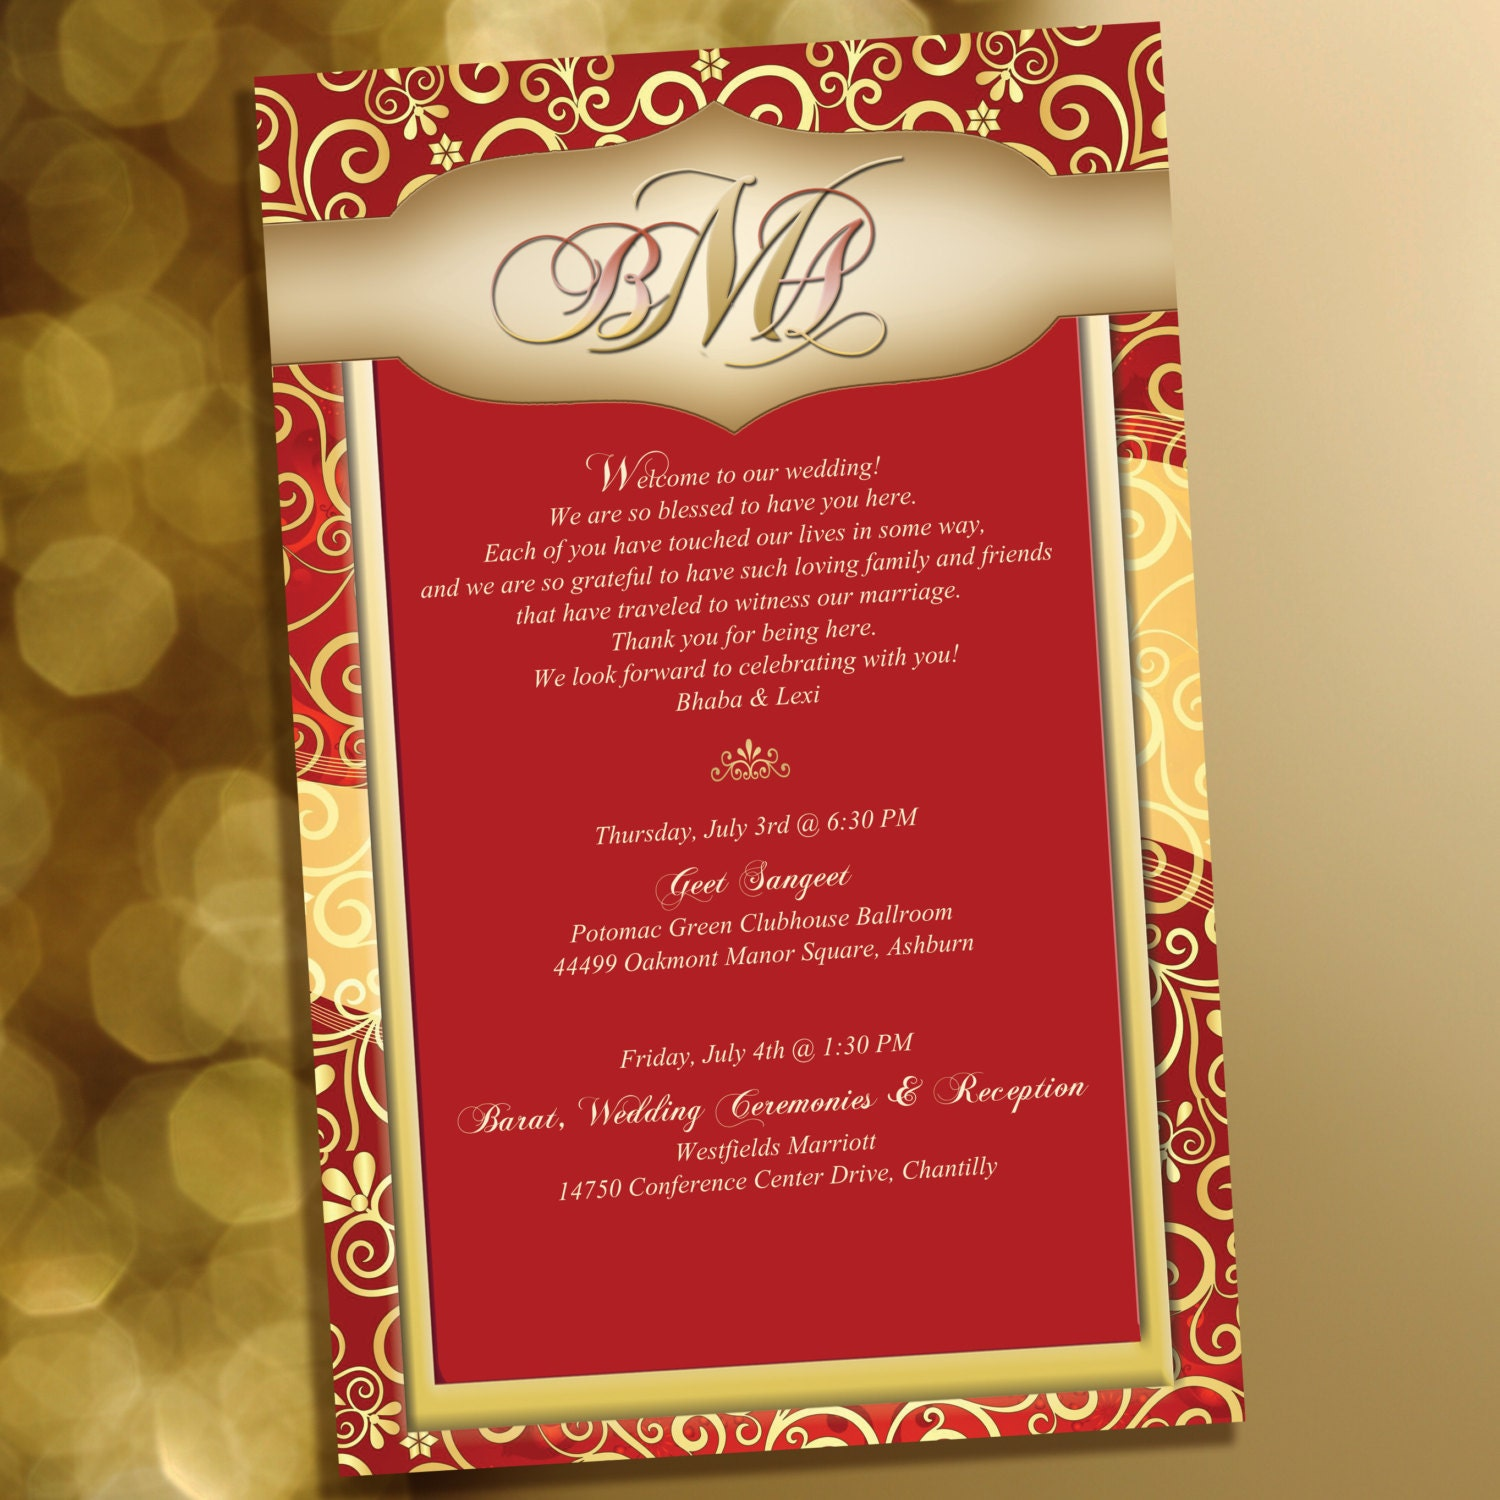 hindu wedding reception invitation wording - Picture Ideas References